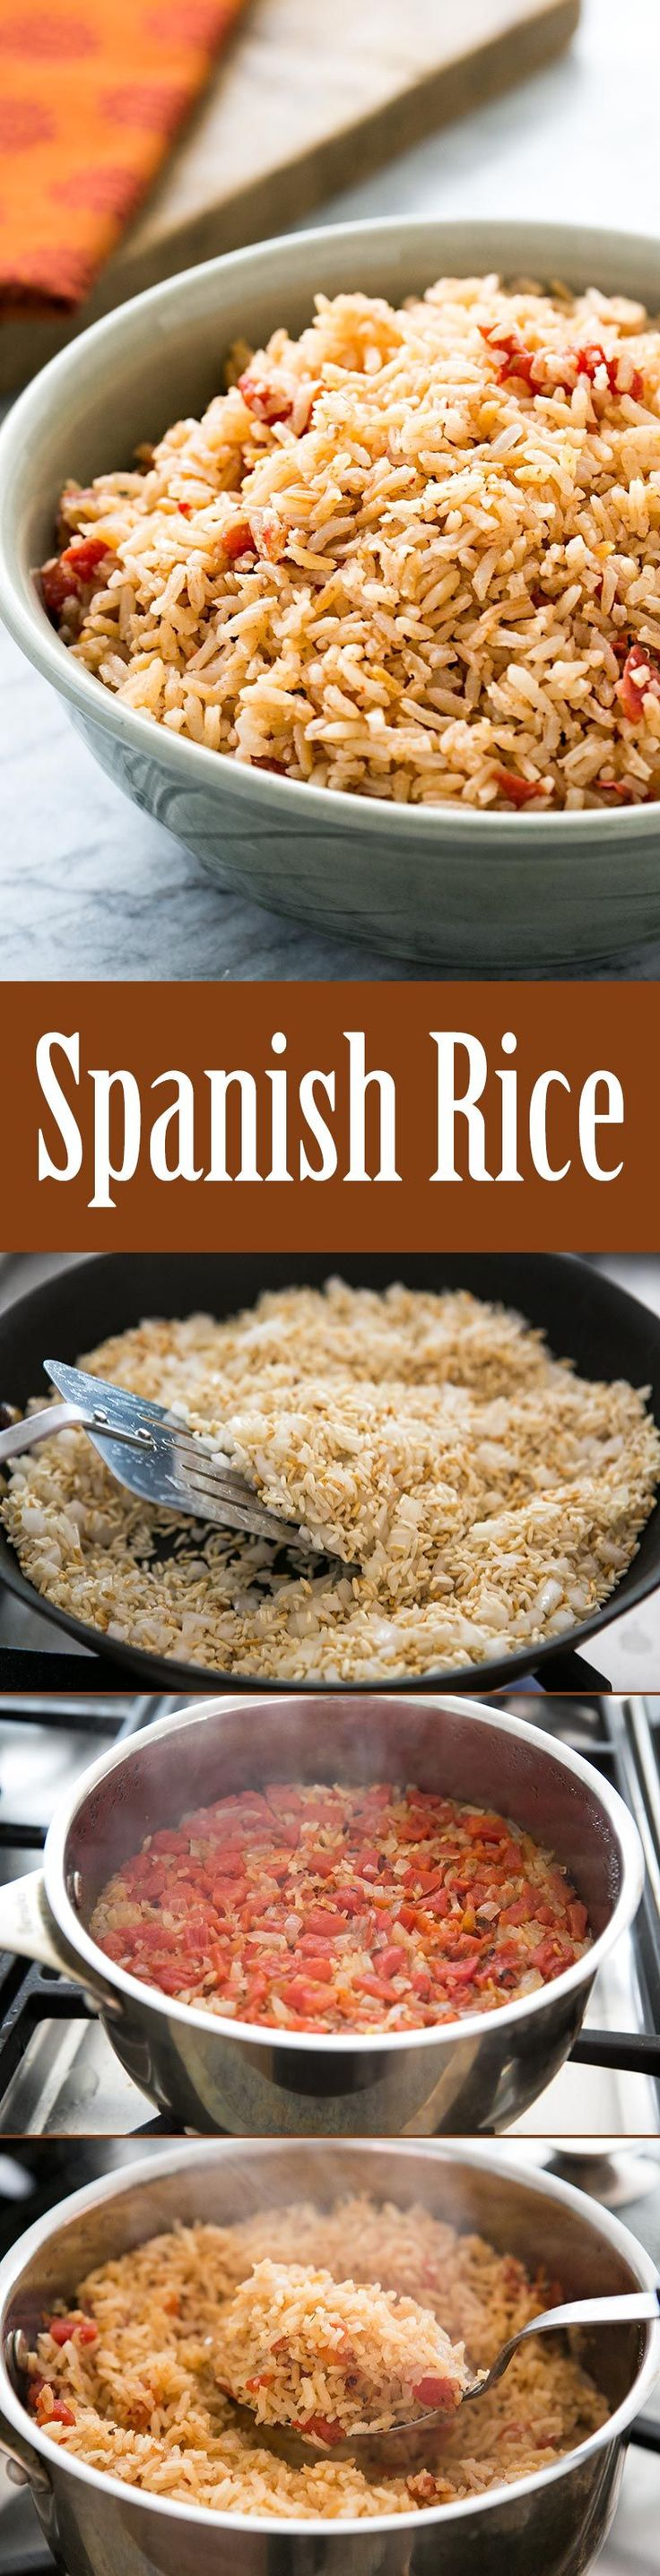 Spanish Rice Mexican Is So Easy To Make This My Mothers